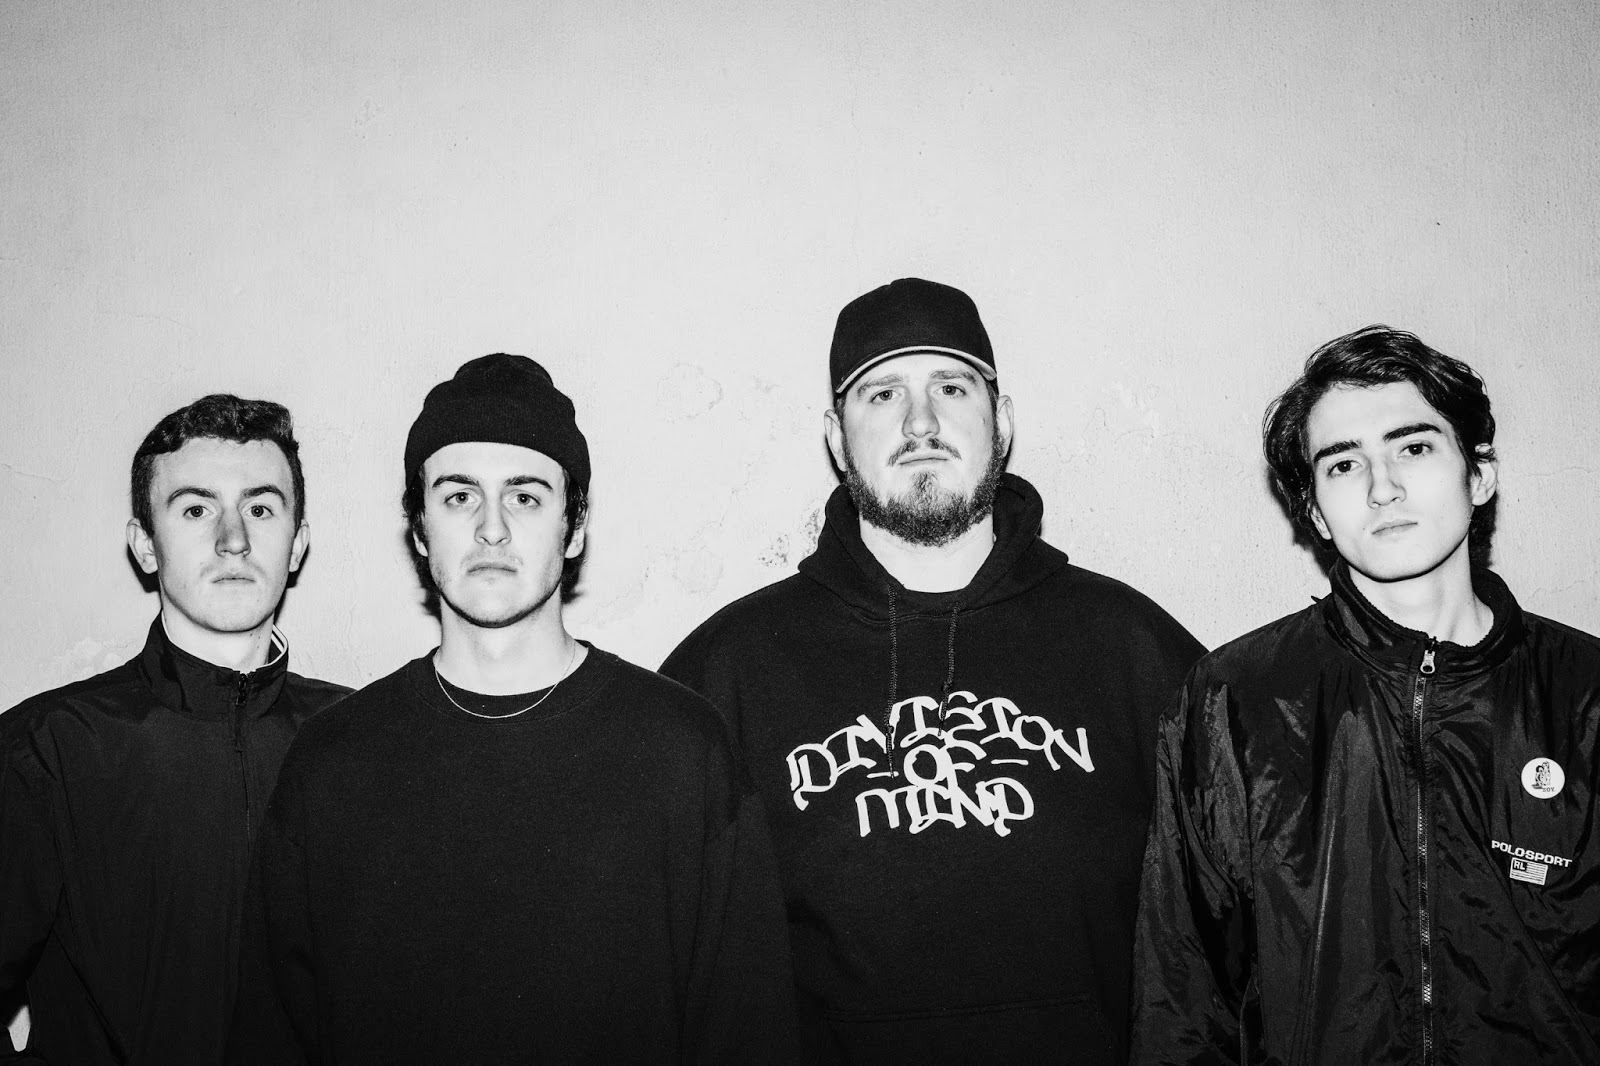 News: NY HARDCORE/METAL BAND SANCTION JOINS PURE NOISE RECORDS